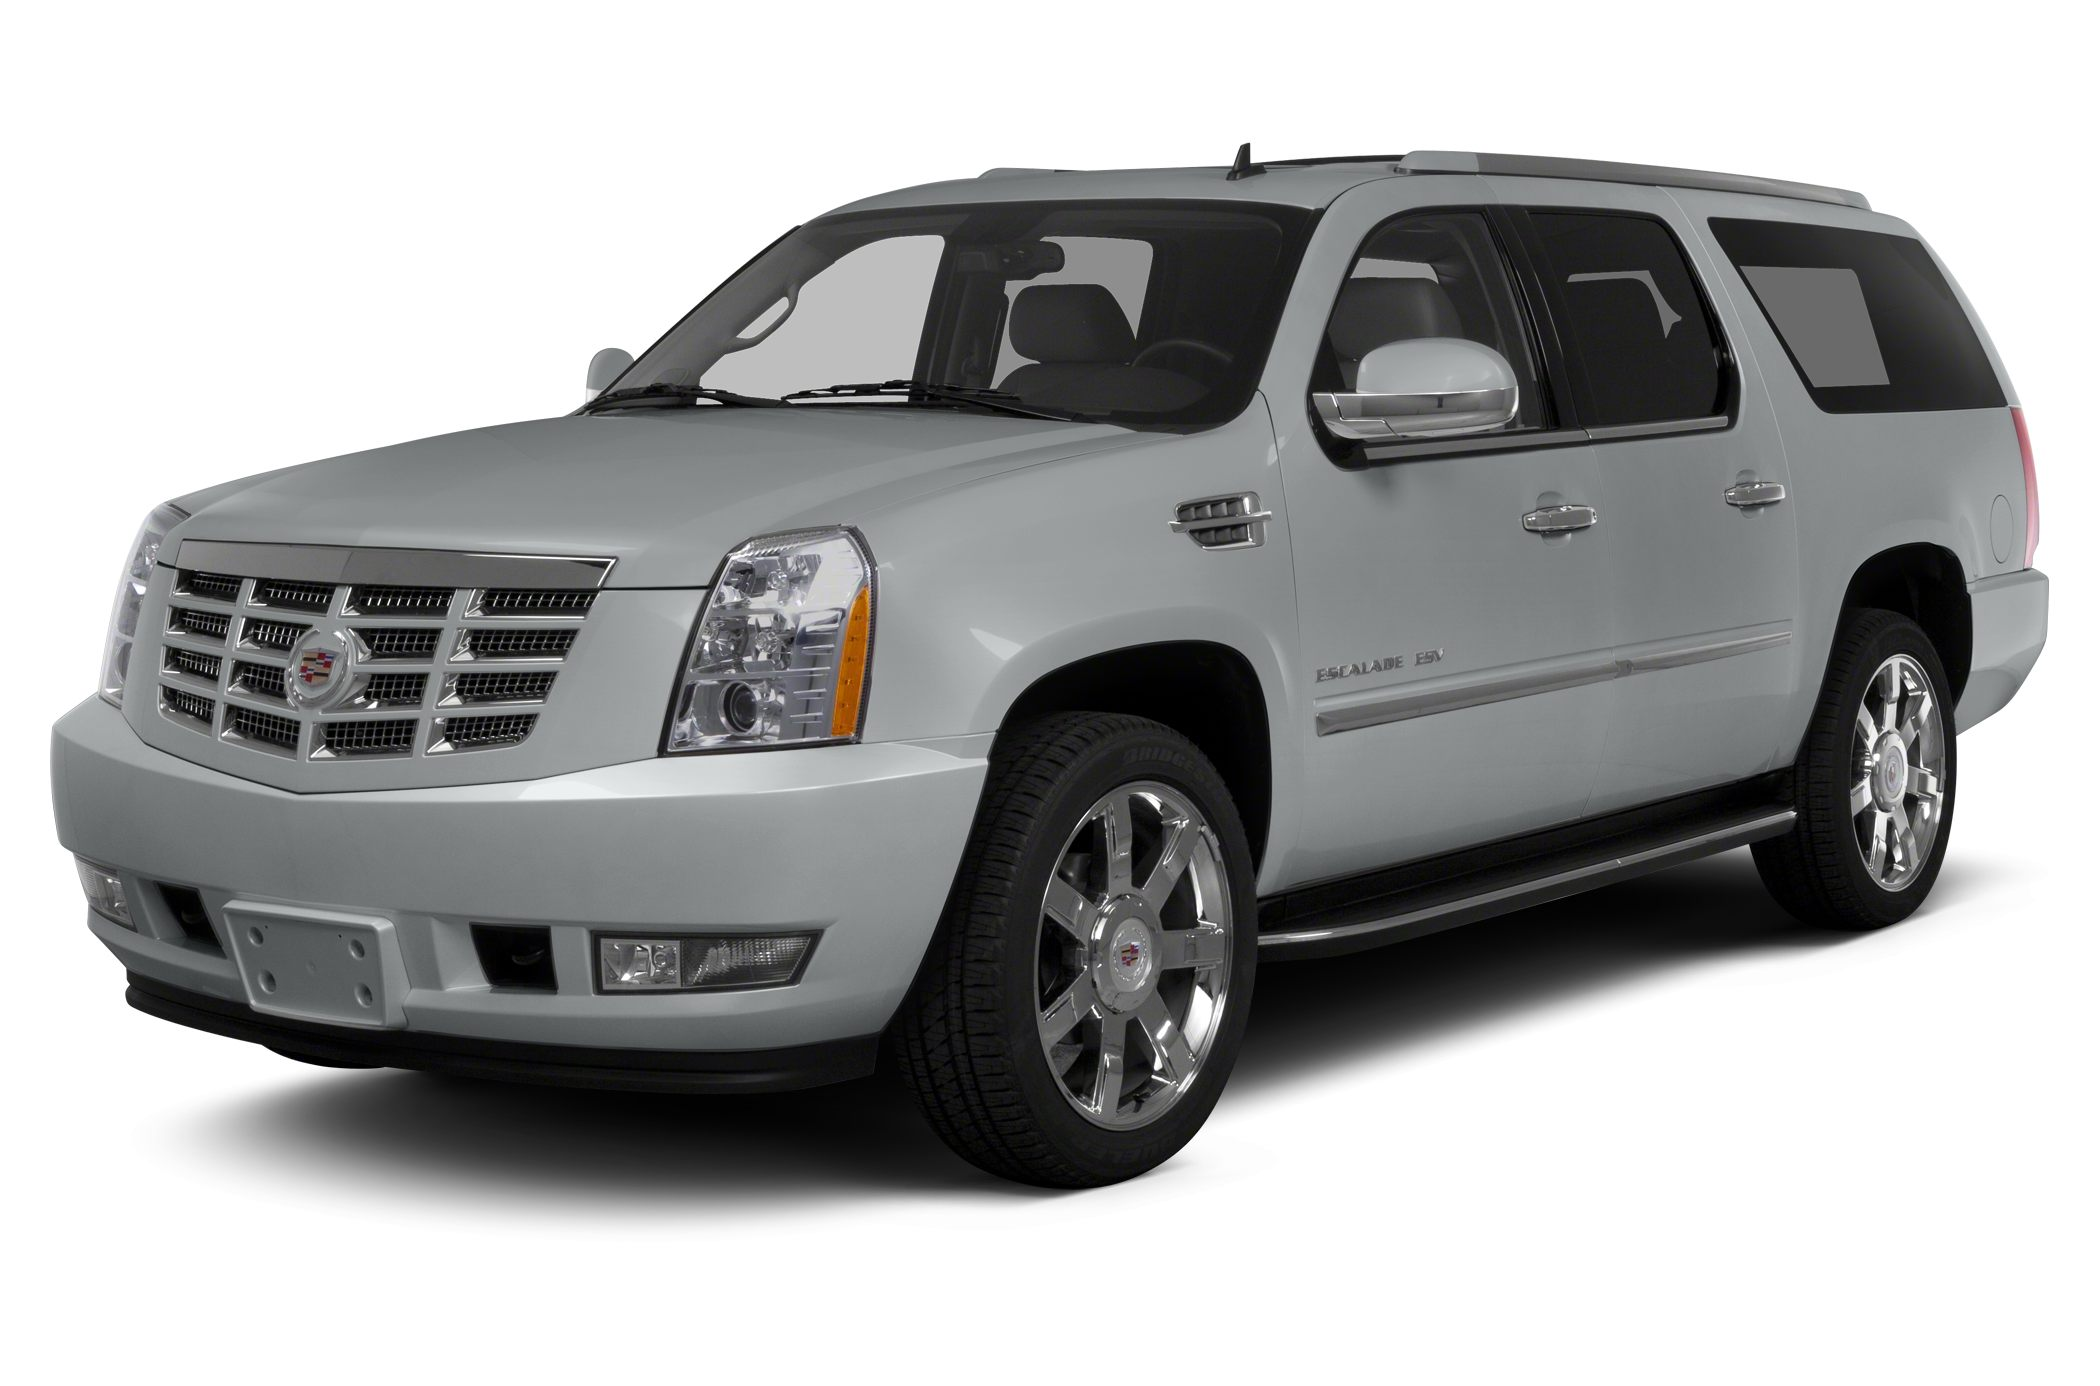 2013 Cadillac Escalade ESV Platinum Edition SUV for sale in Charlotte for $68,995 with 36,455 miles.